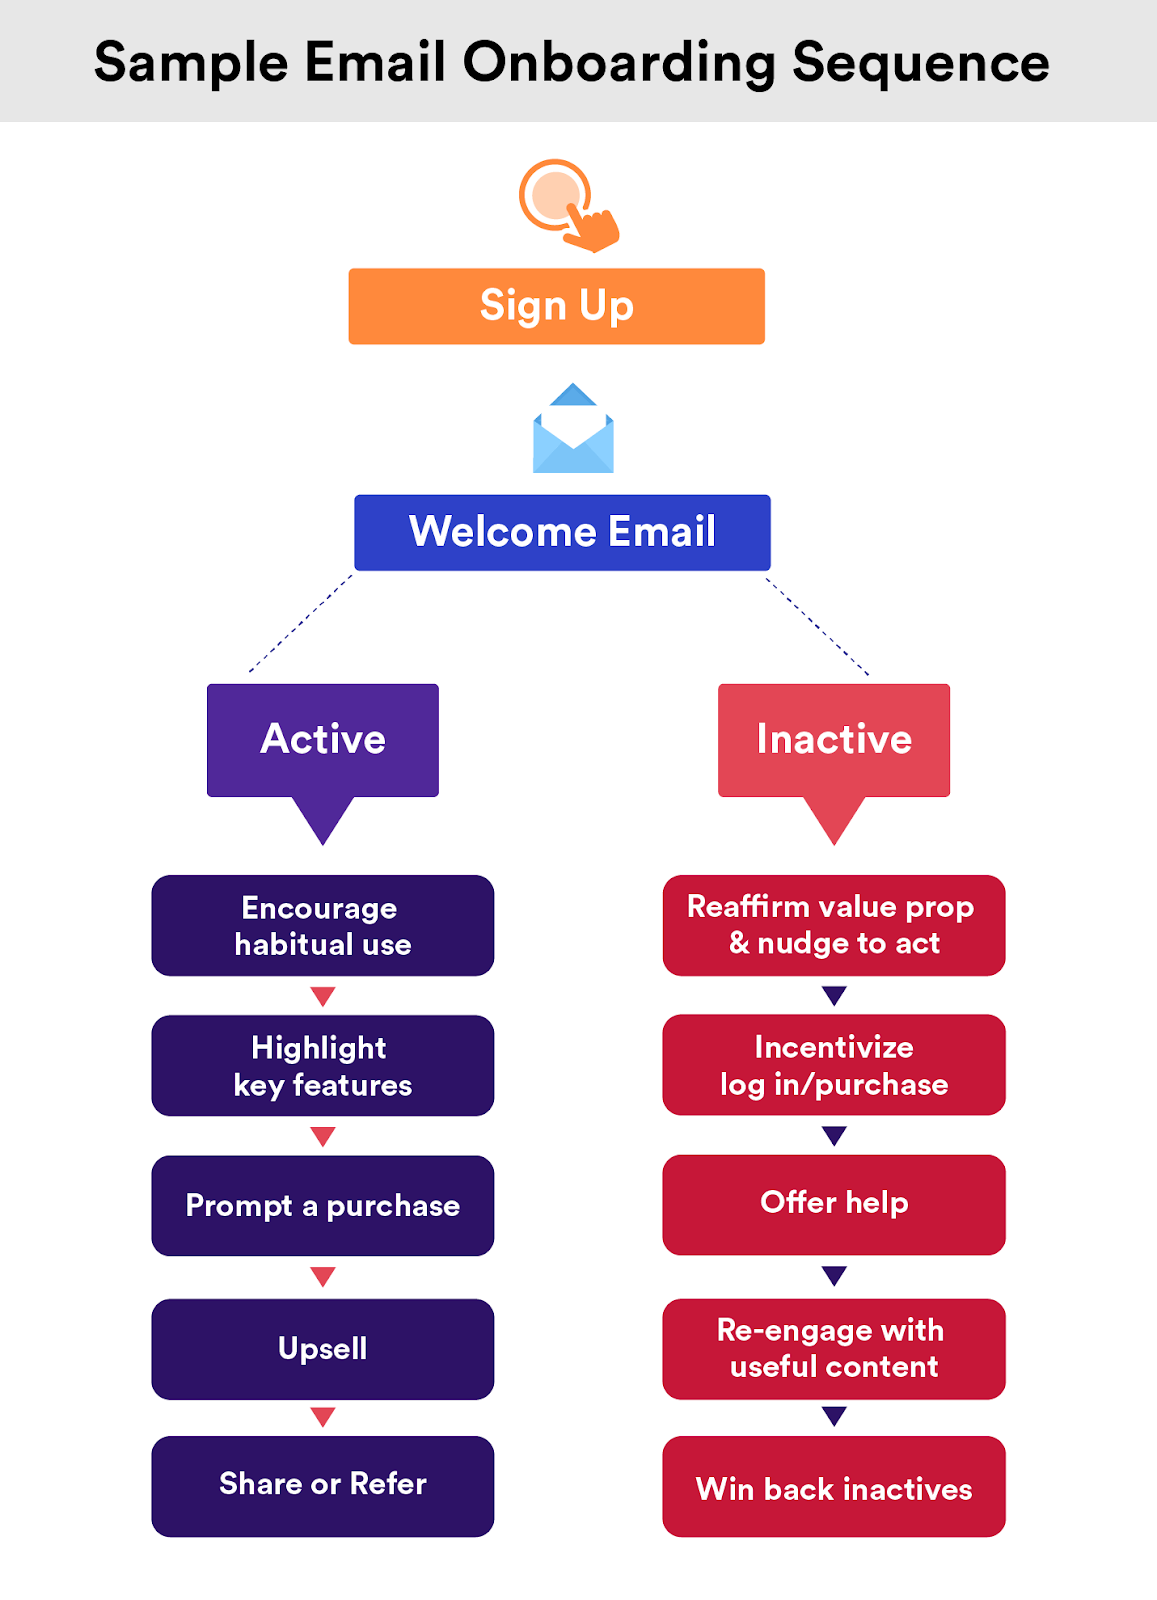 Sample Email Onboarding Sequence for active and inactive users.